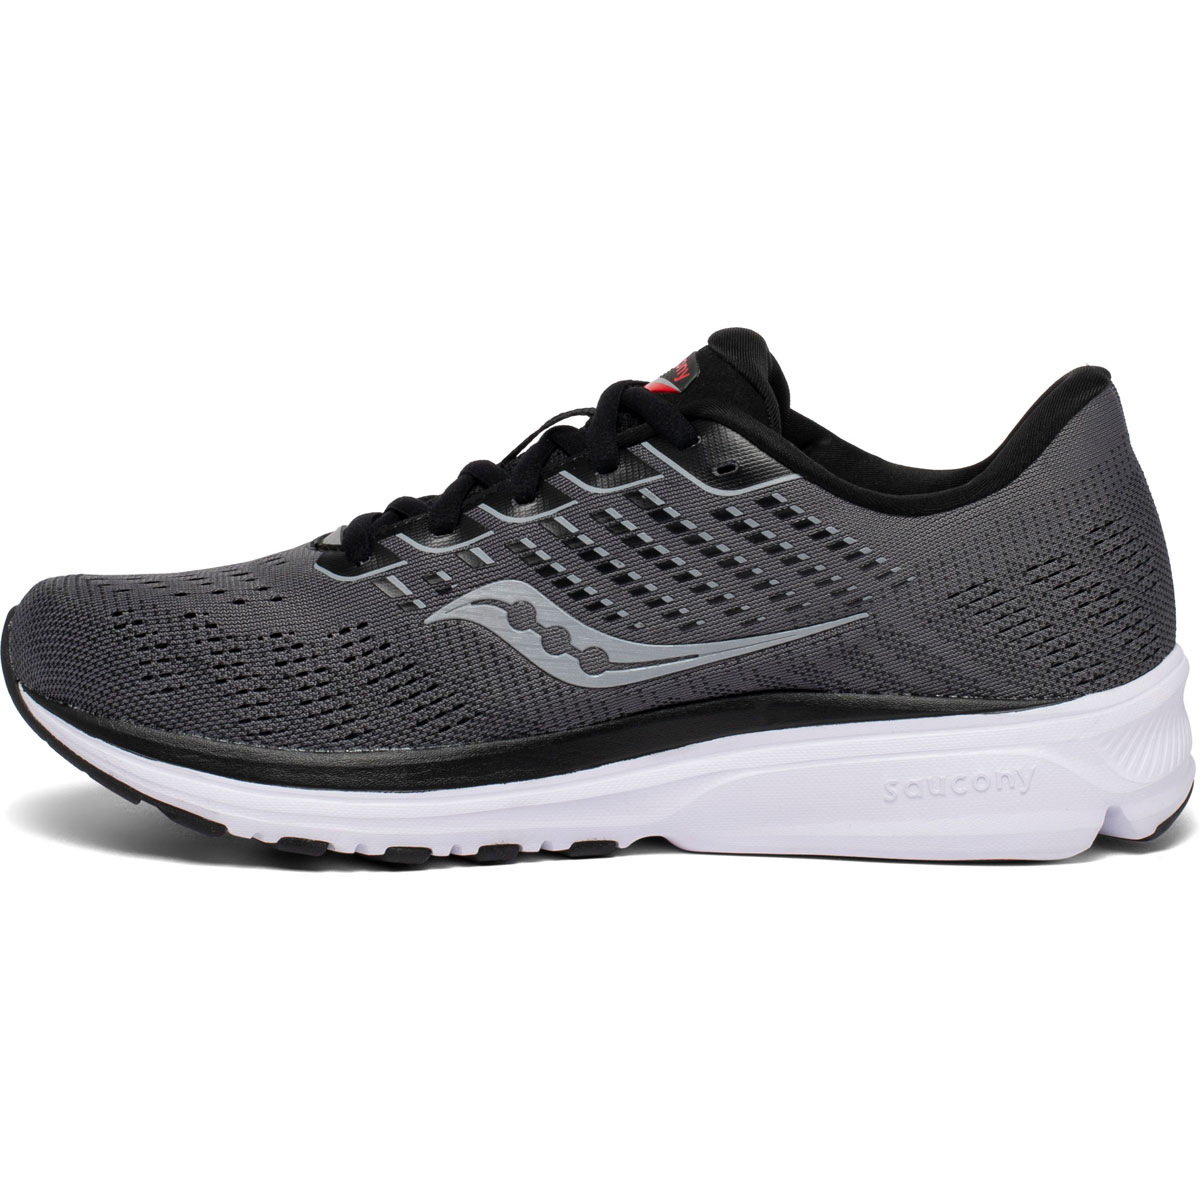 Men's Saucony Ride 13 Running Shoe - Color: Charcoal/Red - Size: 7 - Width: Regular, Charcoal/Red, large, image 2